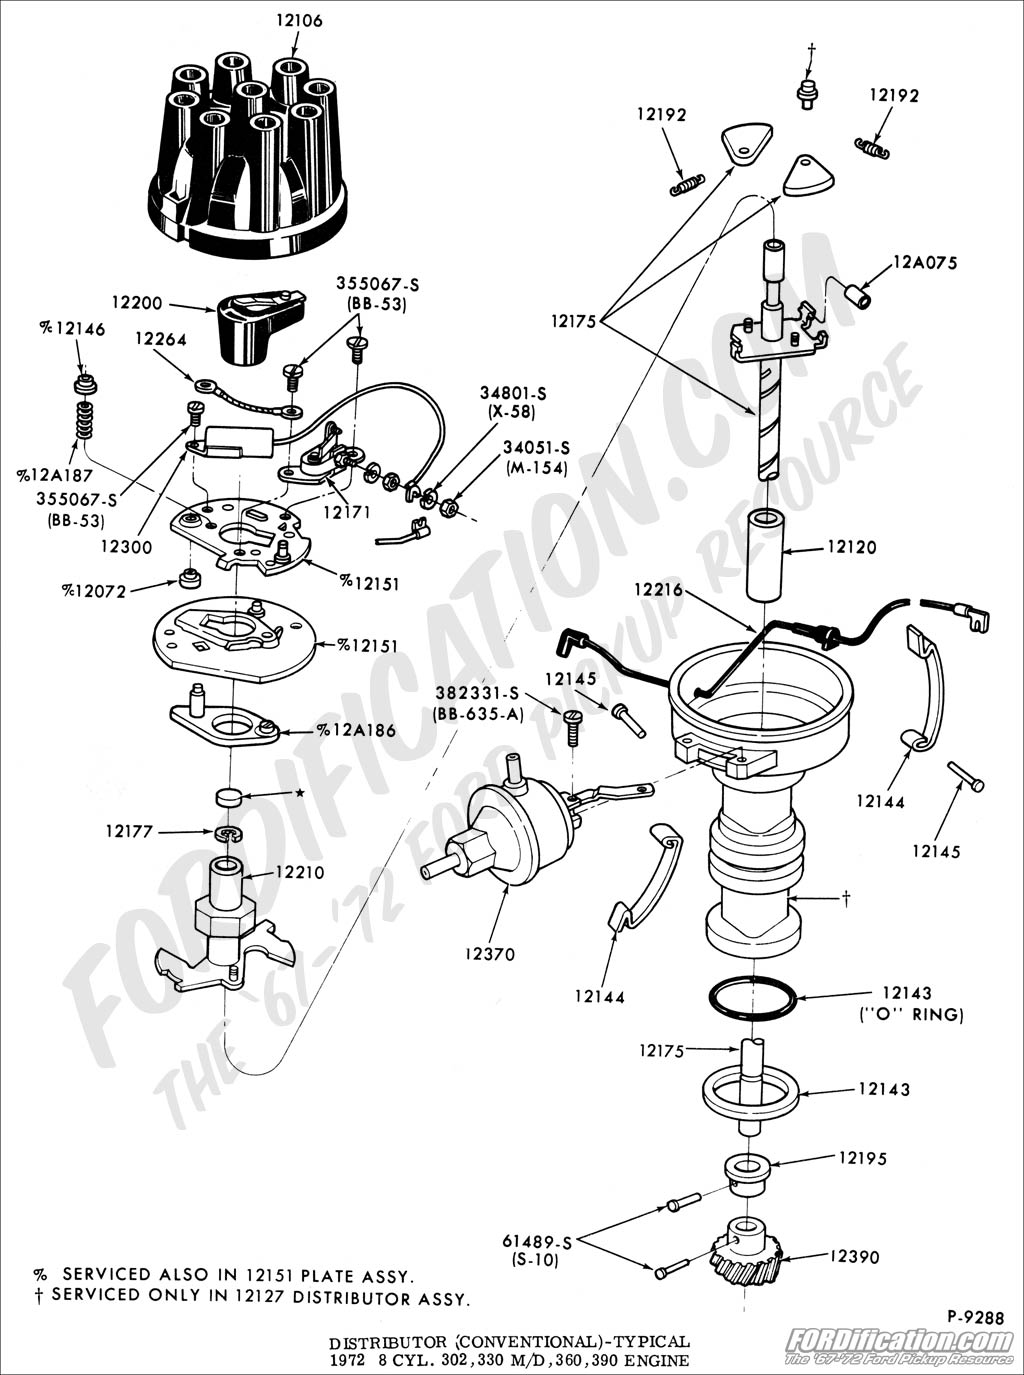 Ford Truck Technical Drawings And Schematics Section I 1971 Bronco Wiring Diagram Electrical